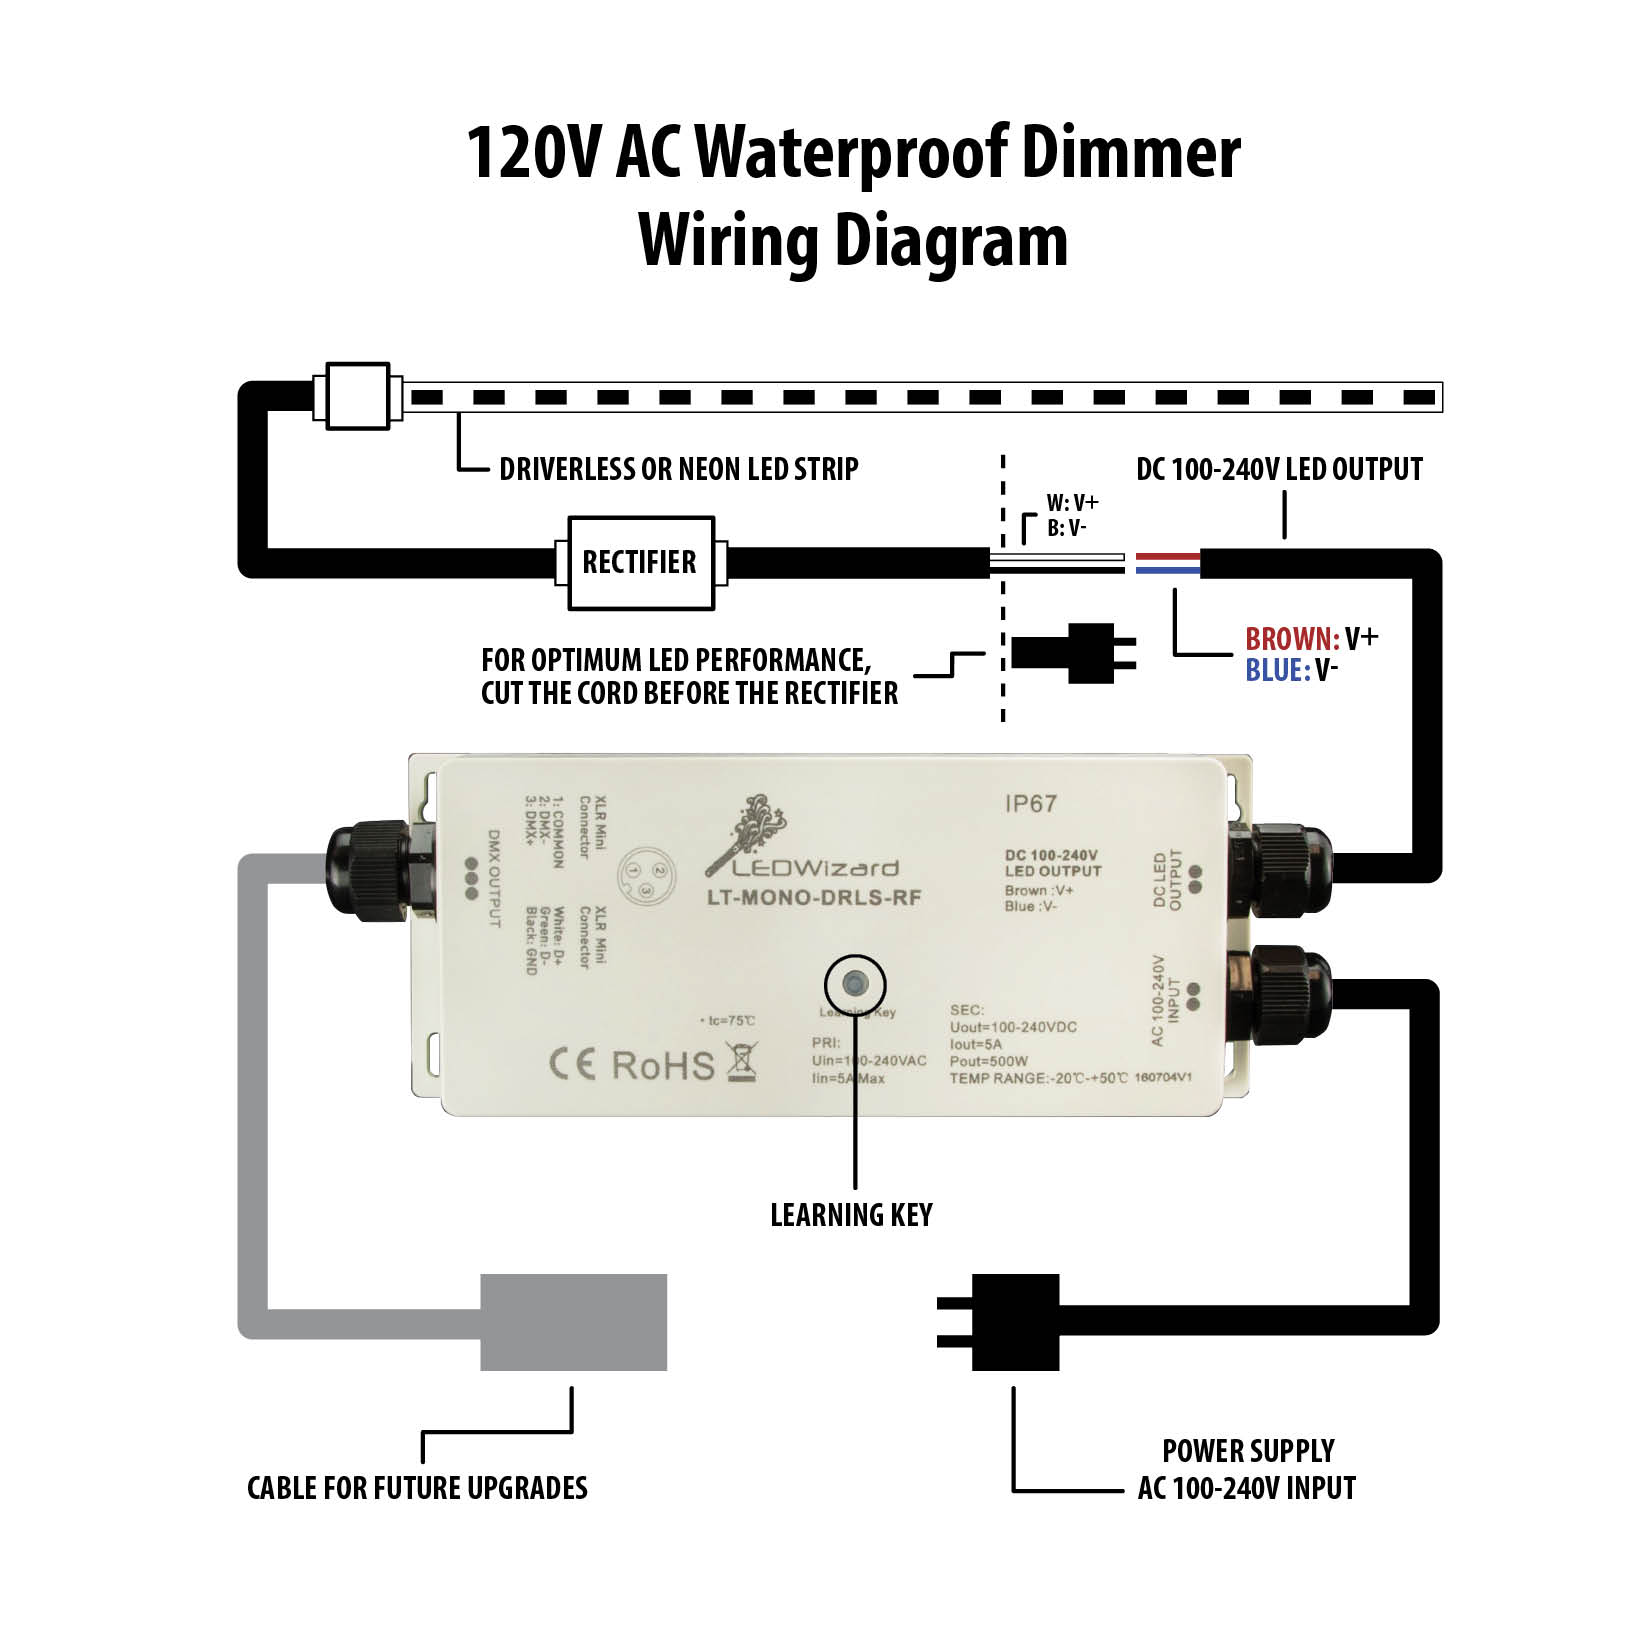 hight resolution of 120v ac waterproof dimmer receiver 120v wiring diagrams lighting wiring 120v dimmer